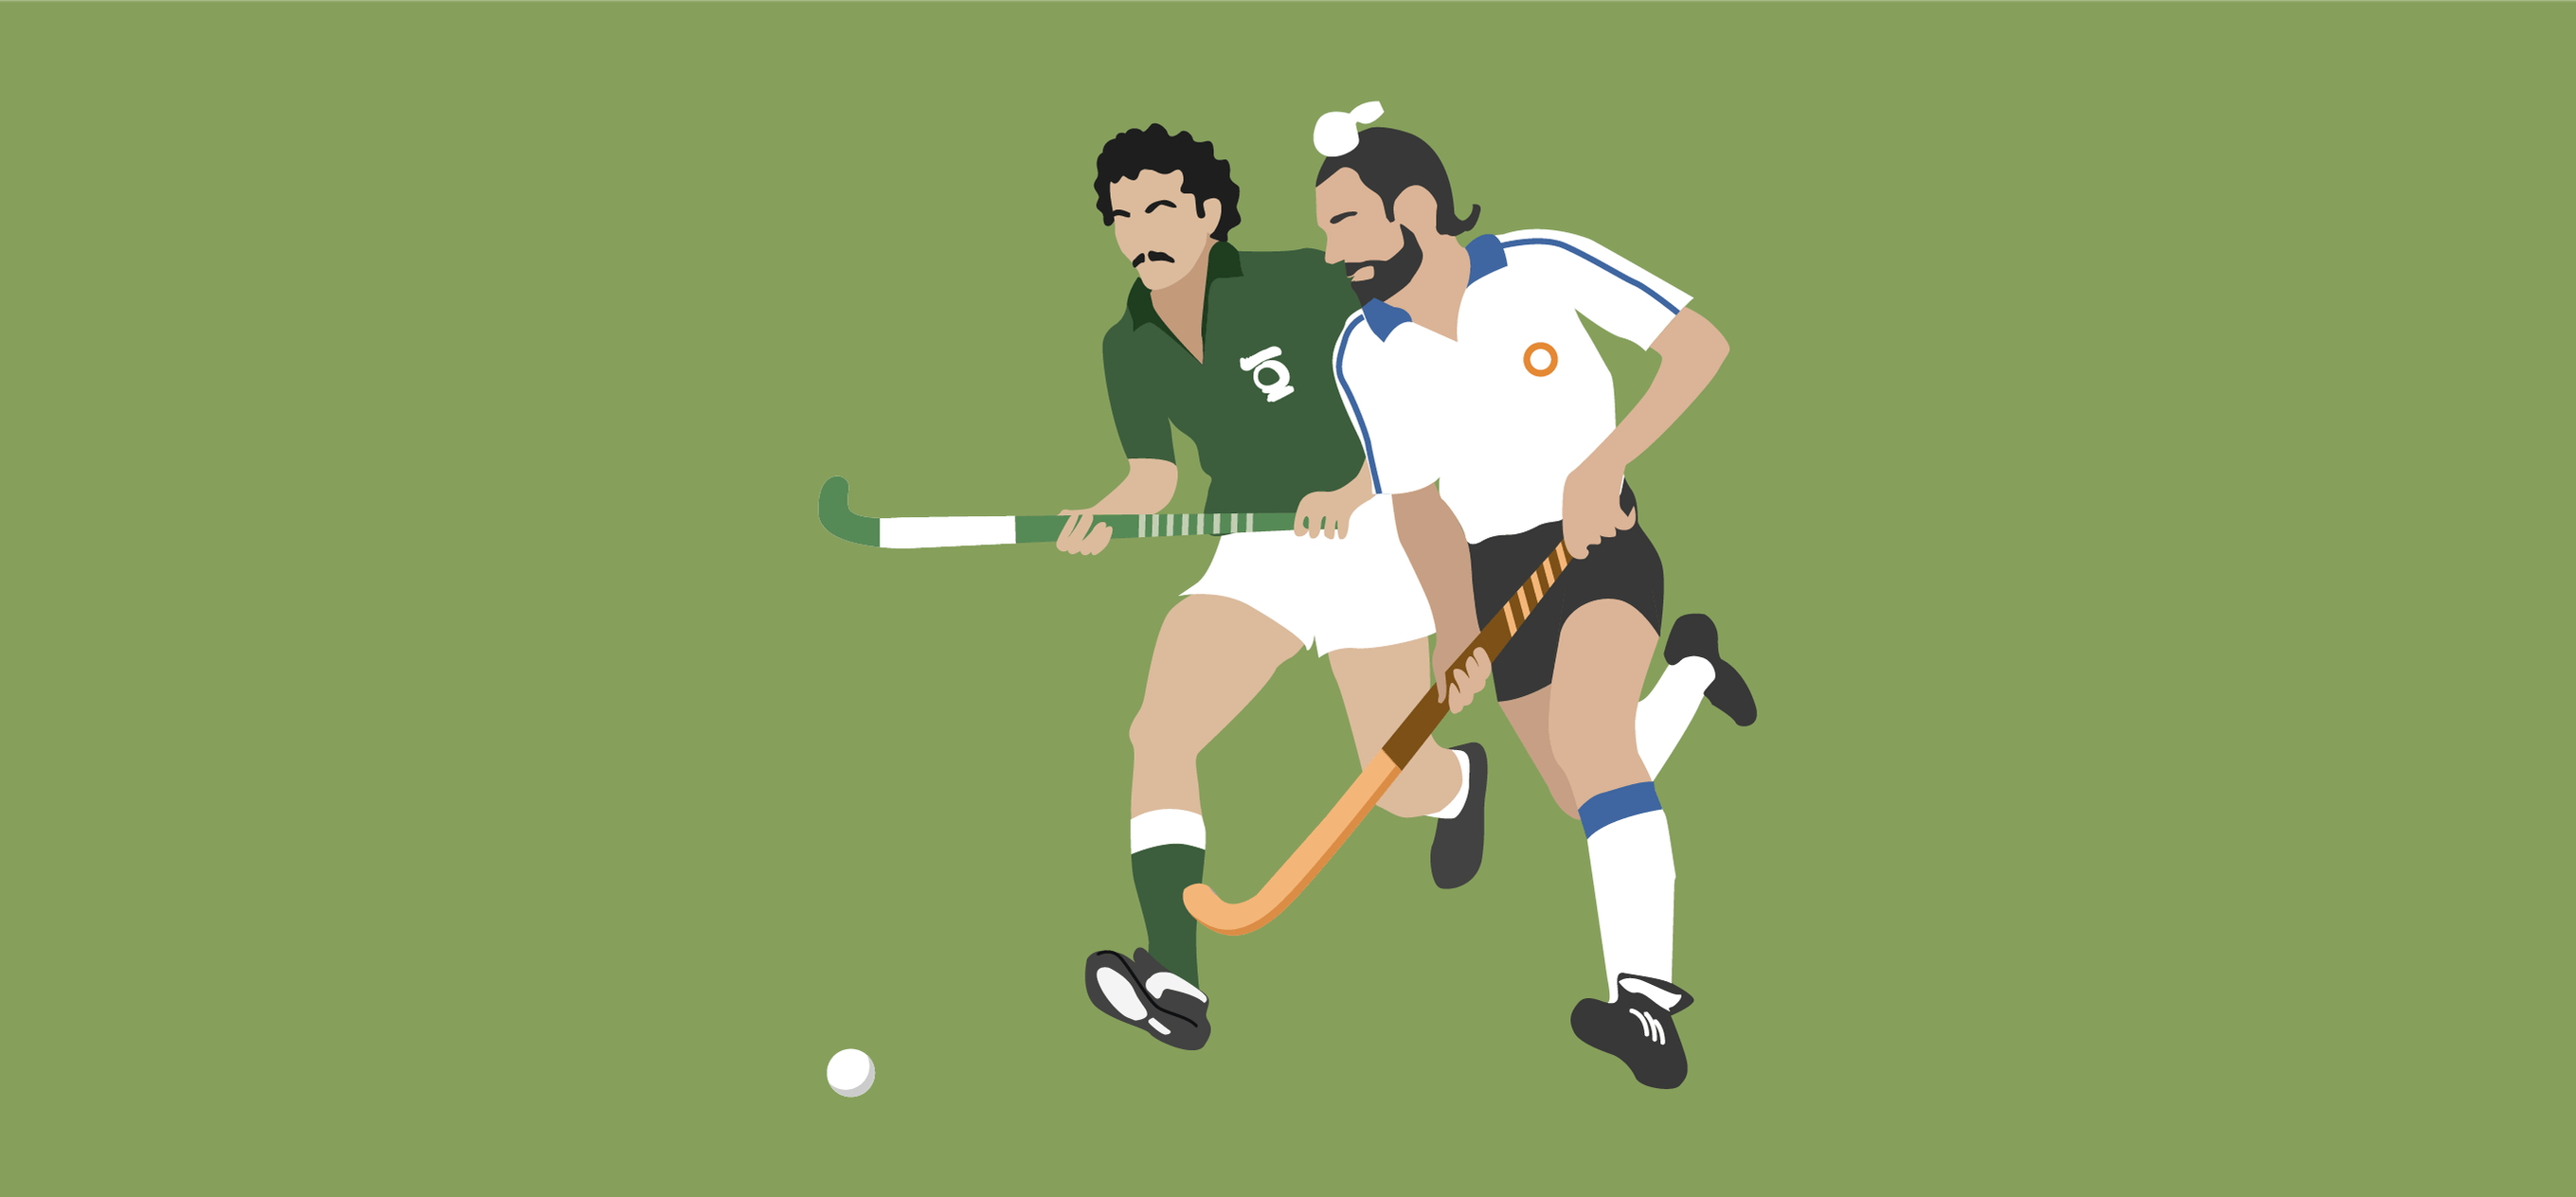 The Switch by Sundeep Misra; Illustration by Akshaya Zachariah for FiftyTwo.in